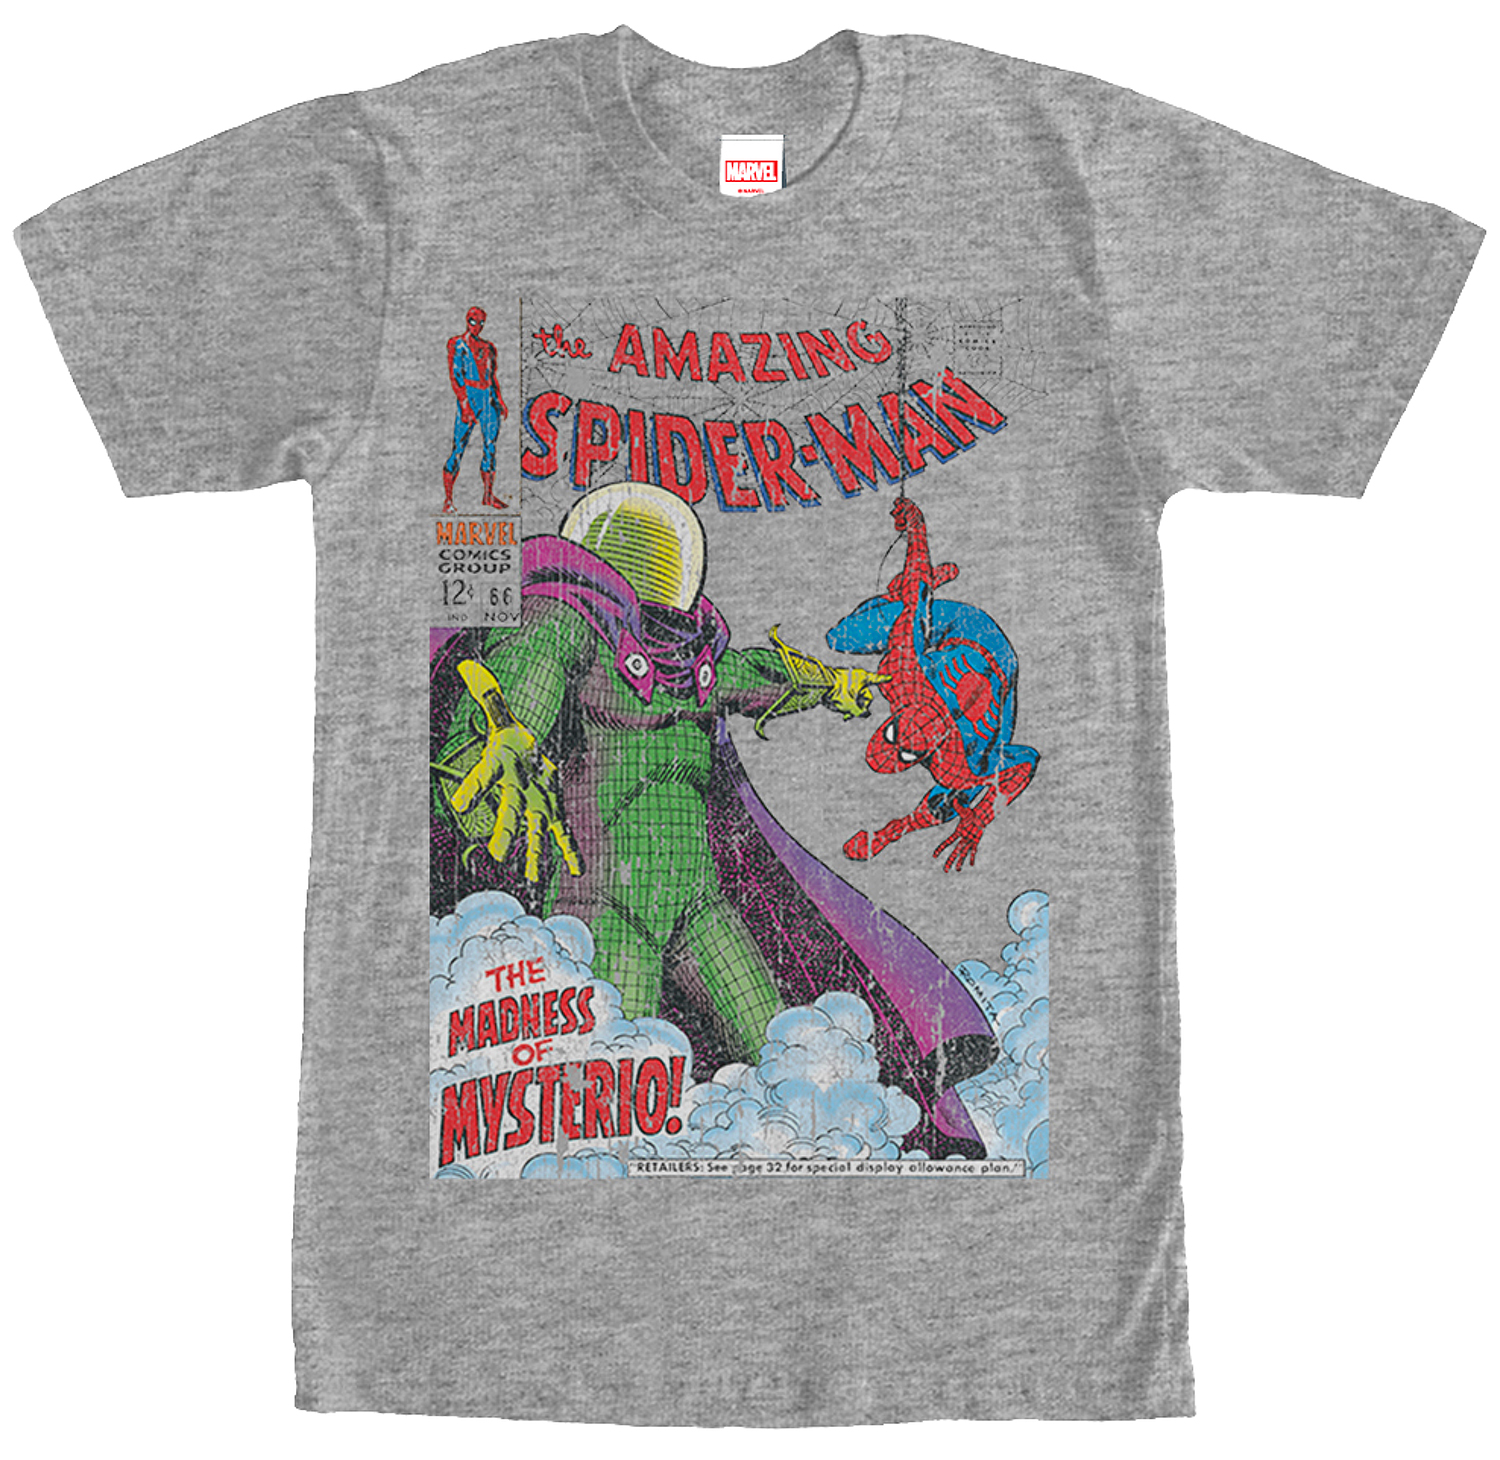 air-jordan-1-origin-story-spiderman-sneaker-tee-shirt-5